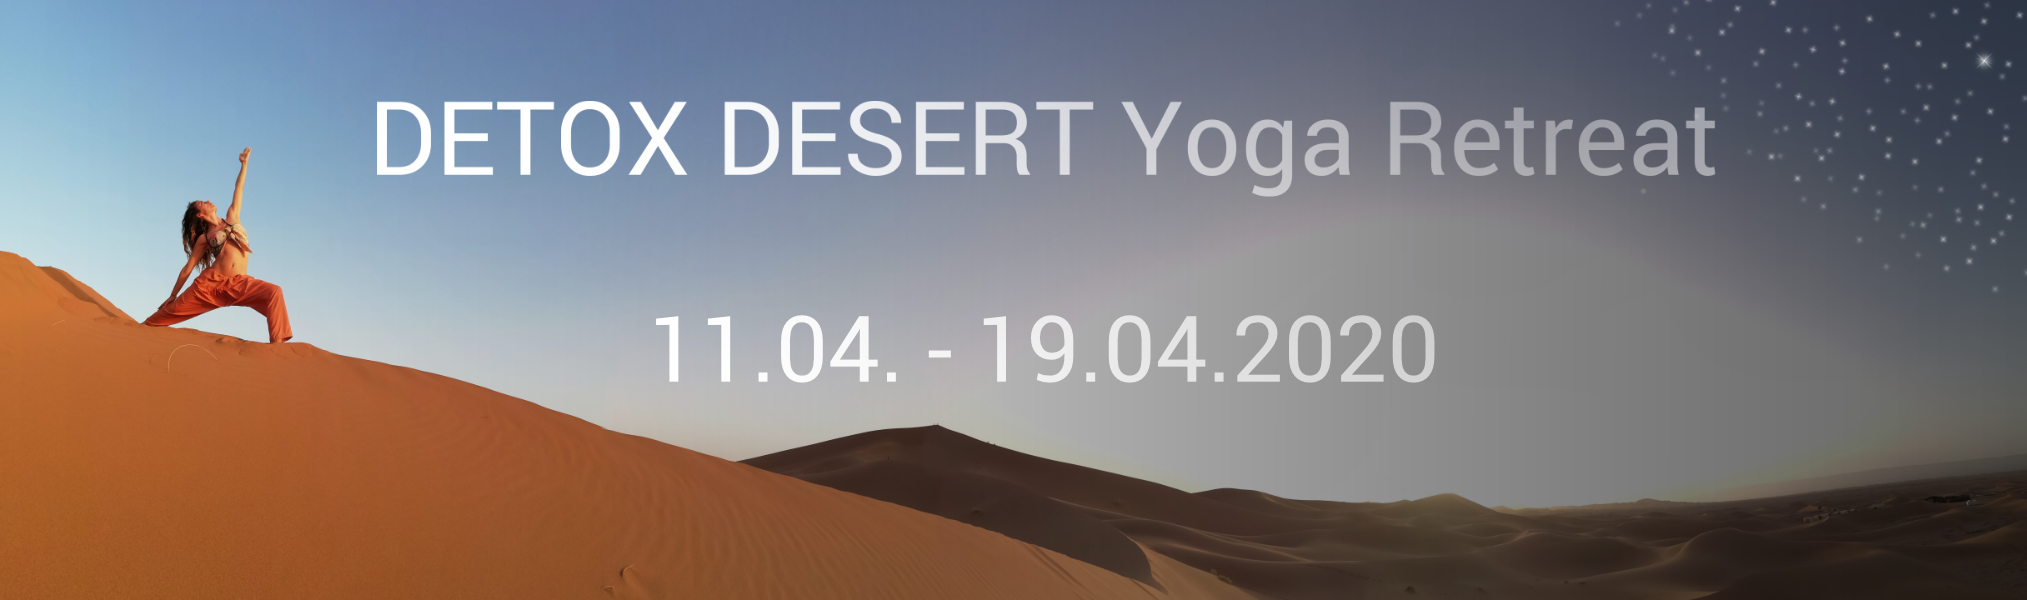 Warrior yoga pose in the sahara desert under day and night sky